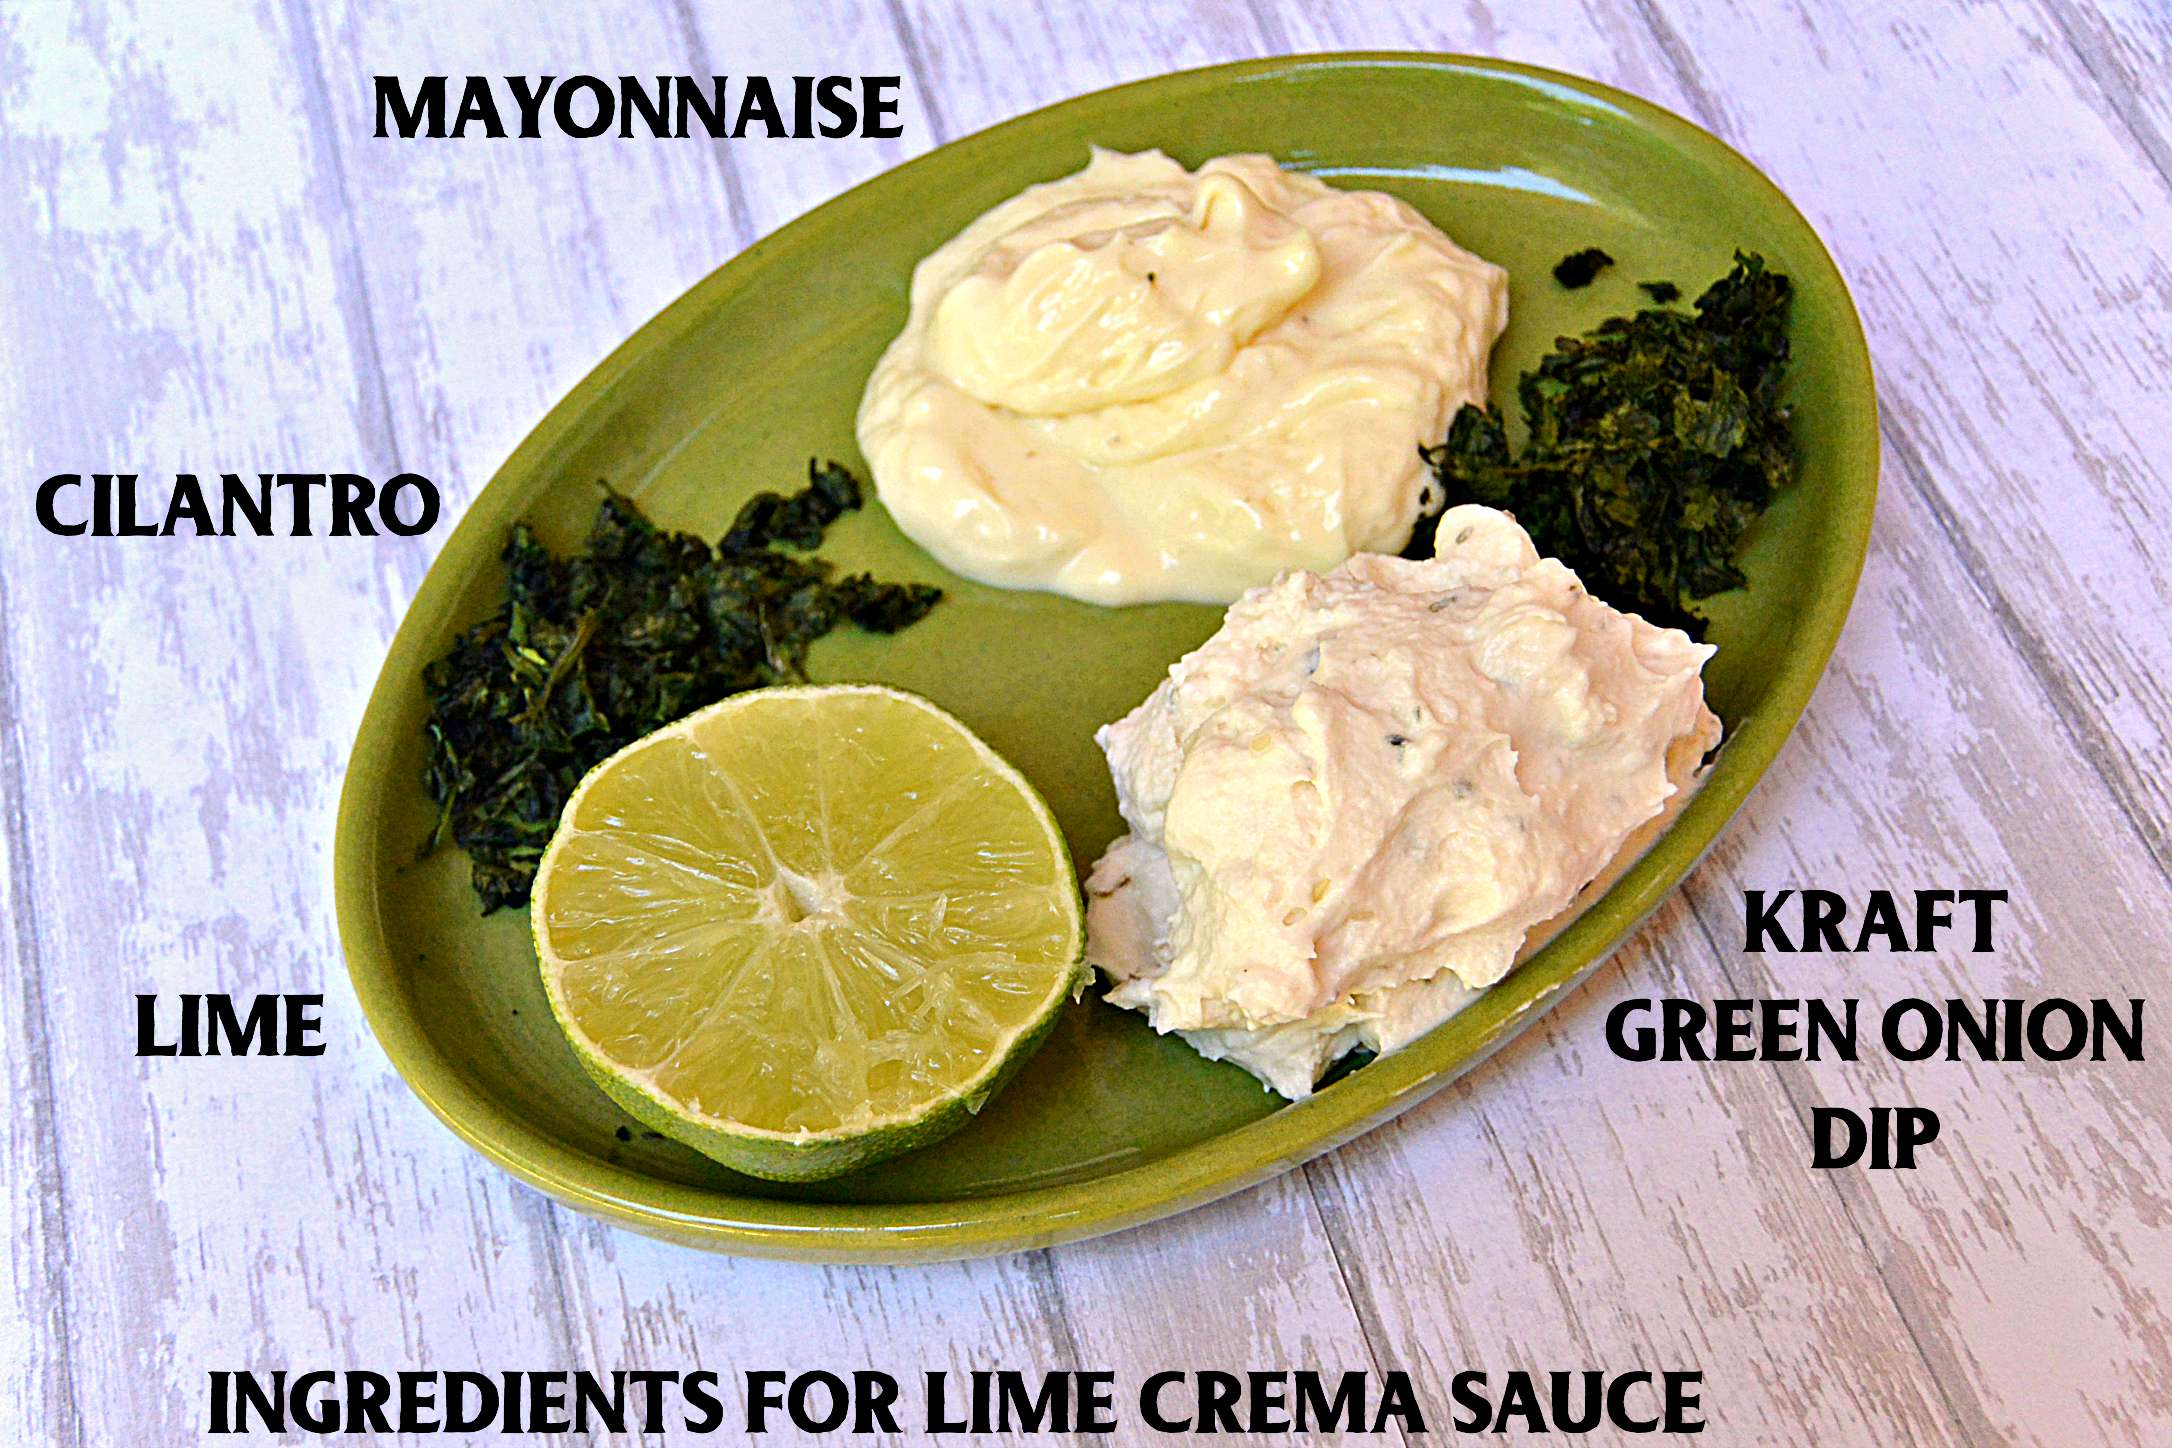 Lime Crema Sauce ingredients